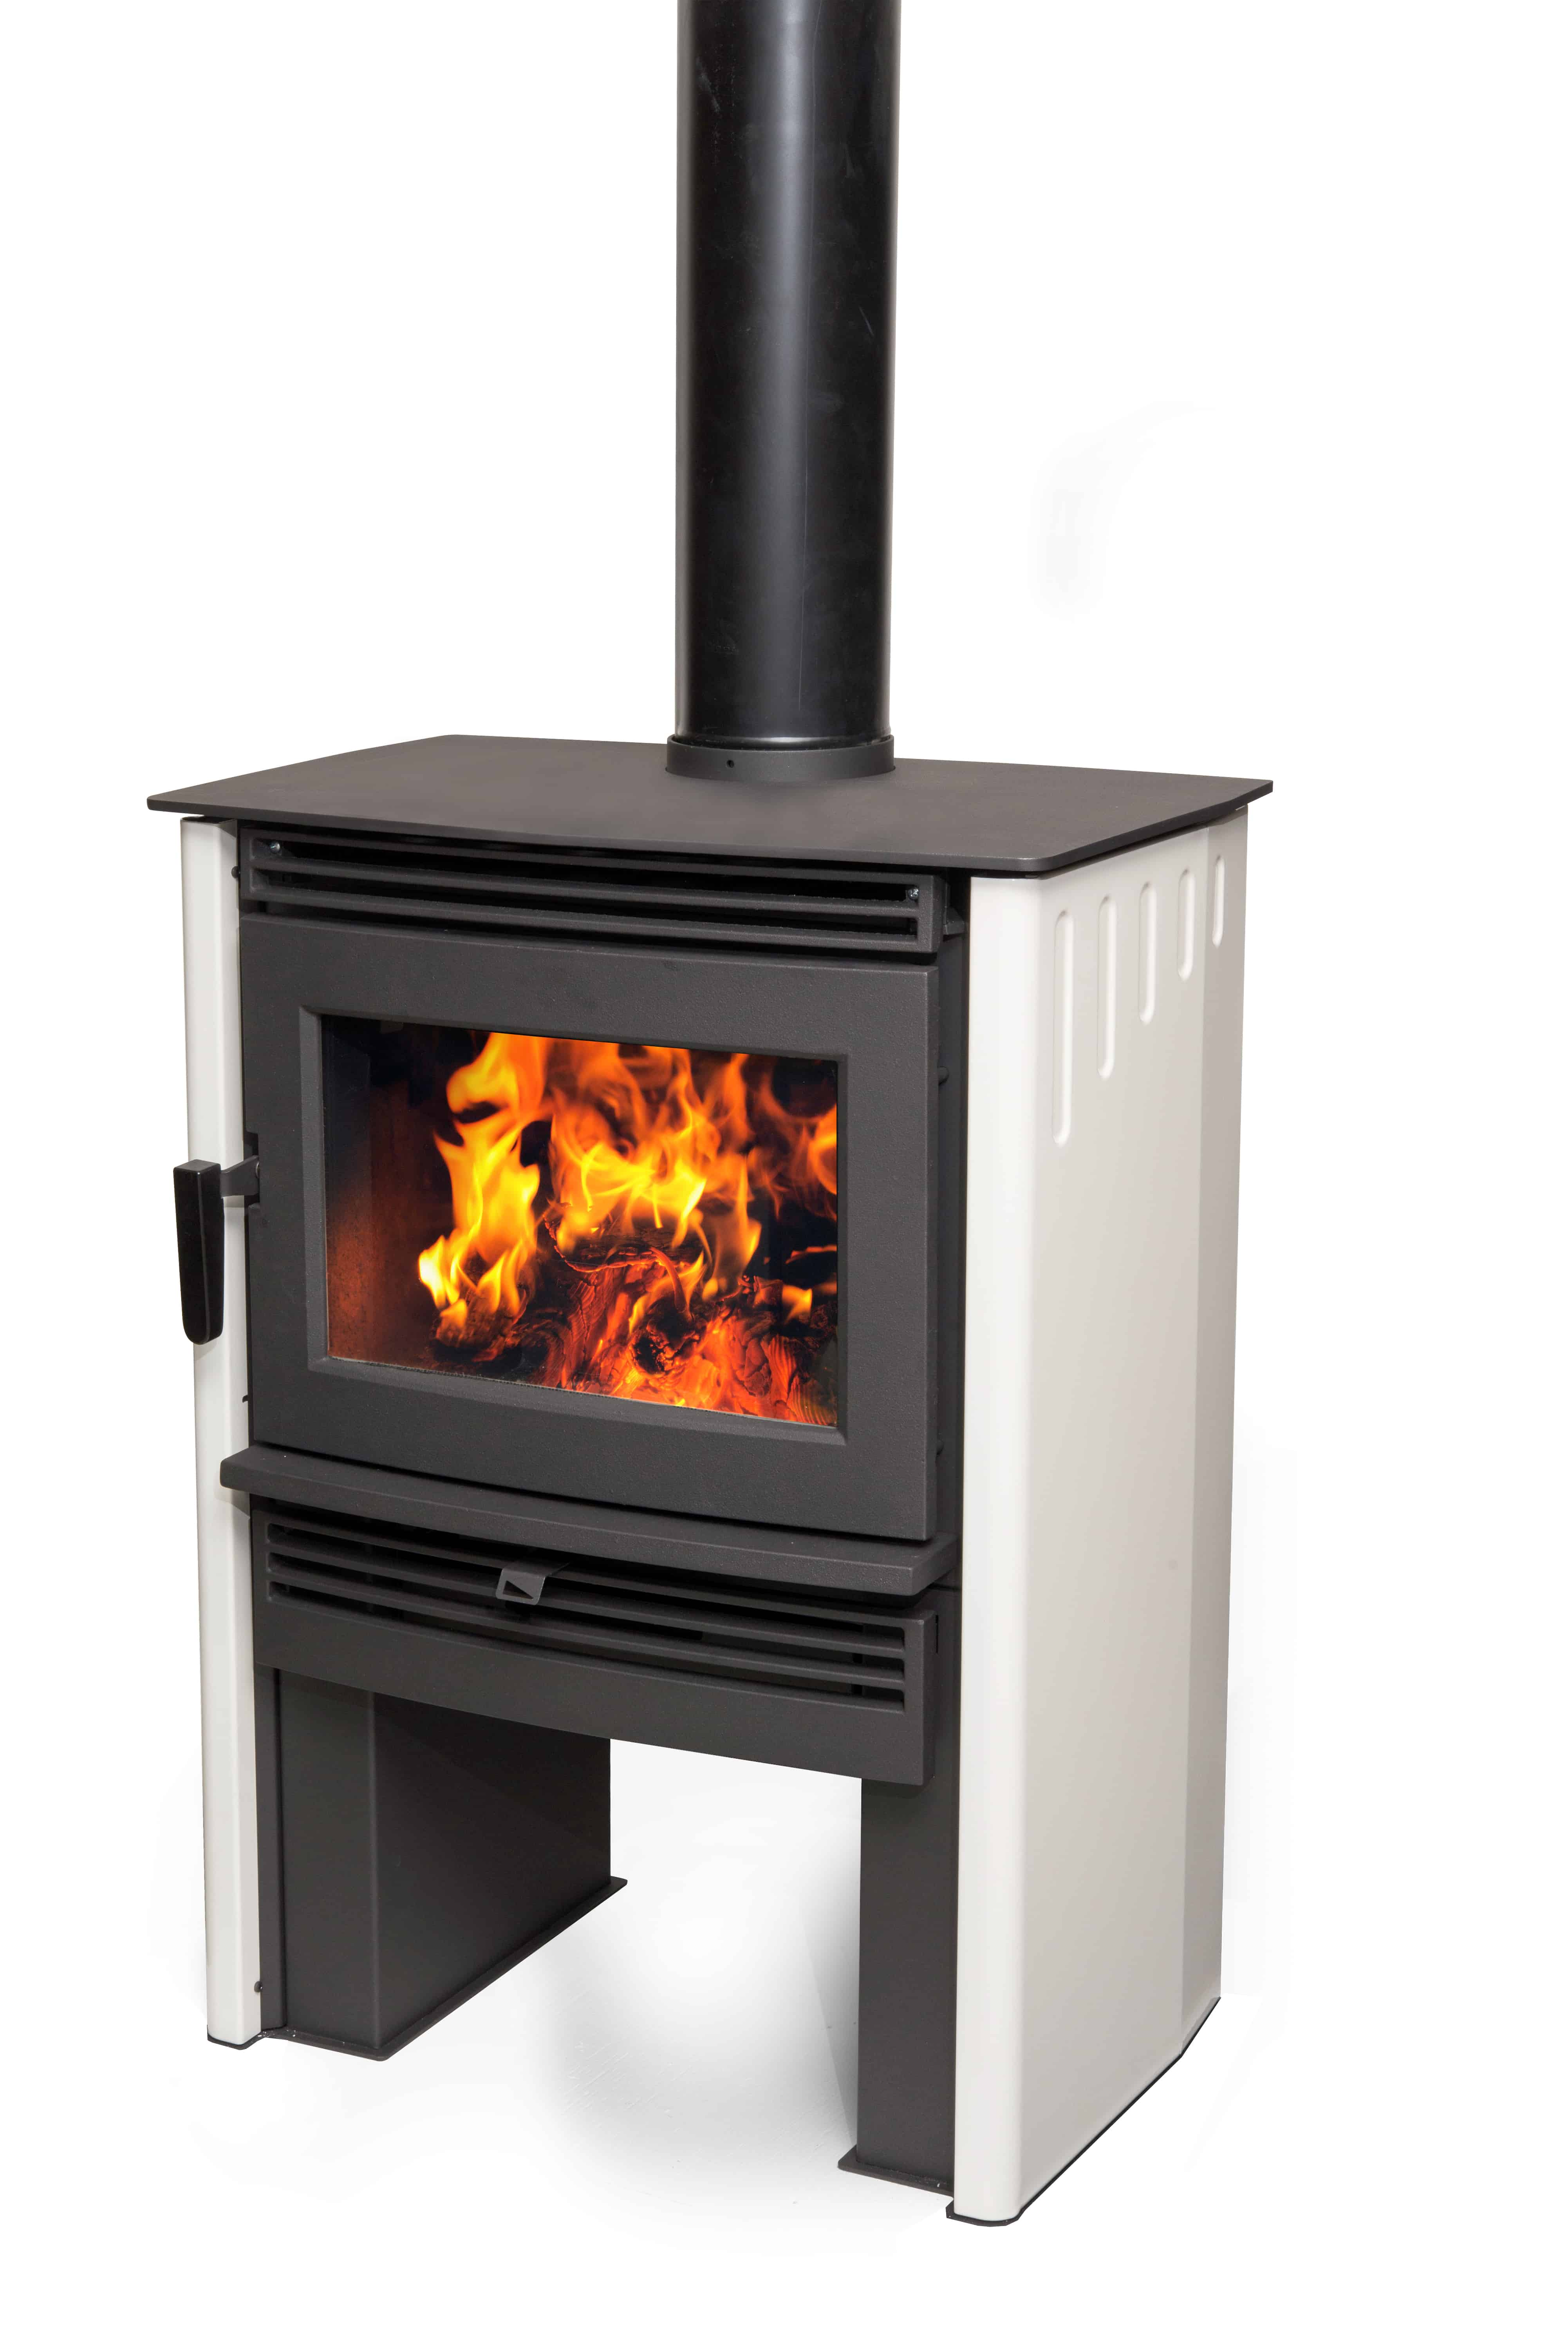 Pacific Energy Neo 1 6 Le Wood Stove Safe Home Fireplace